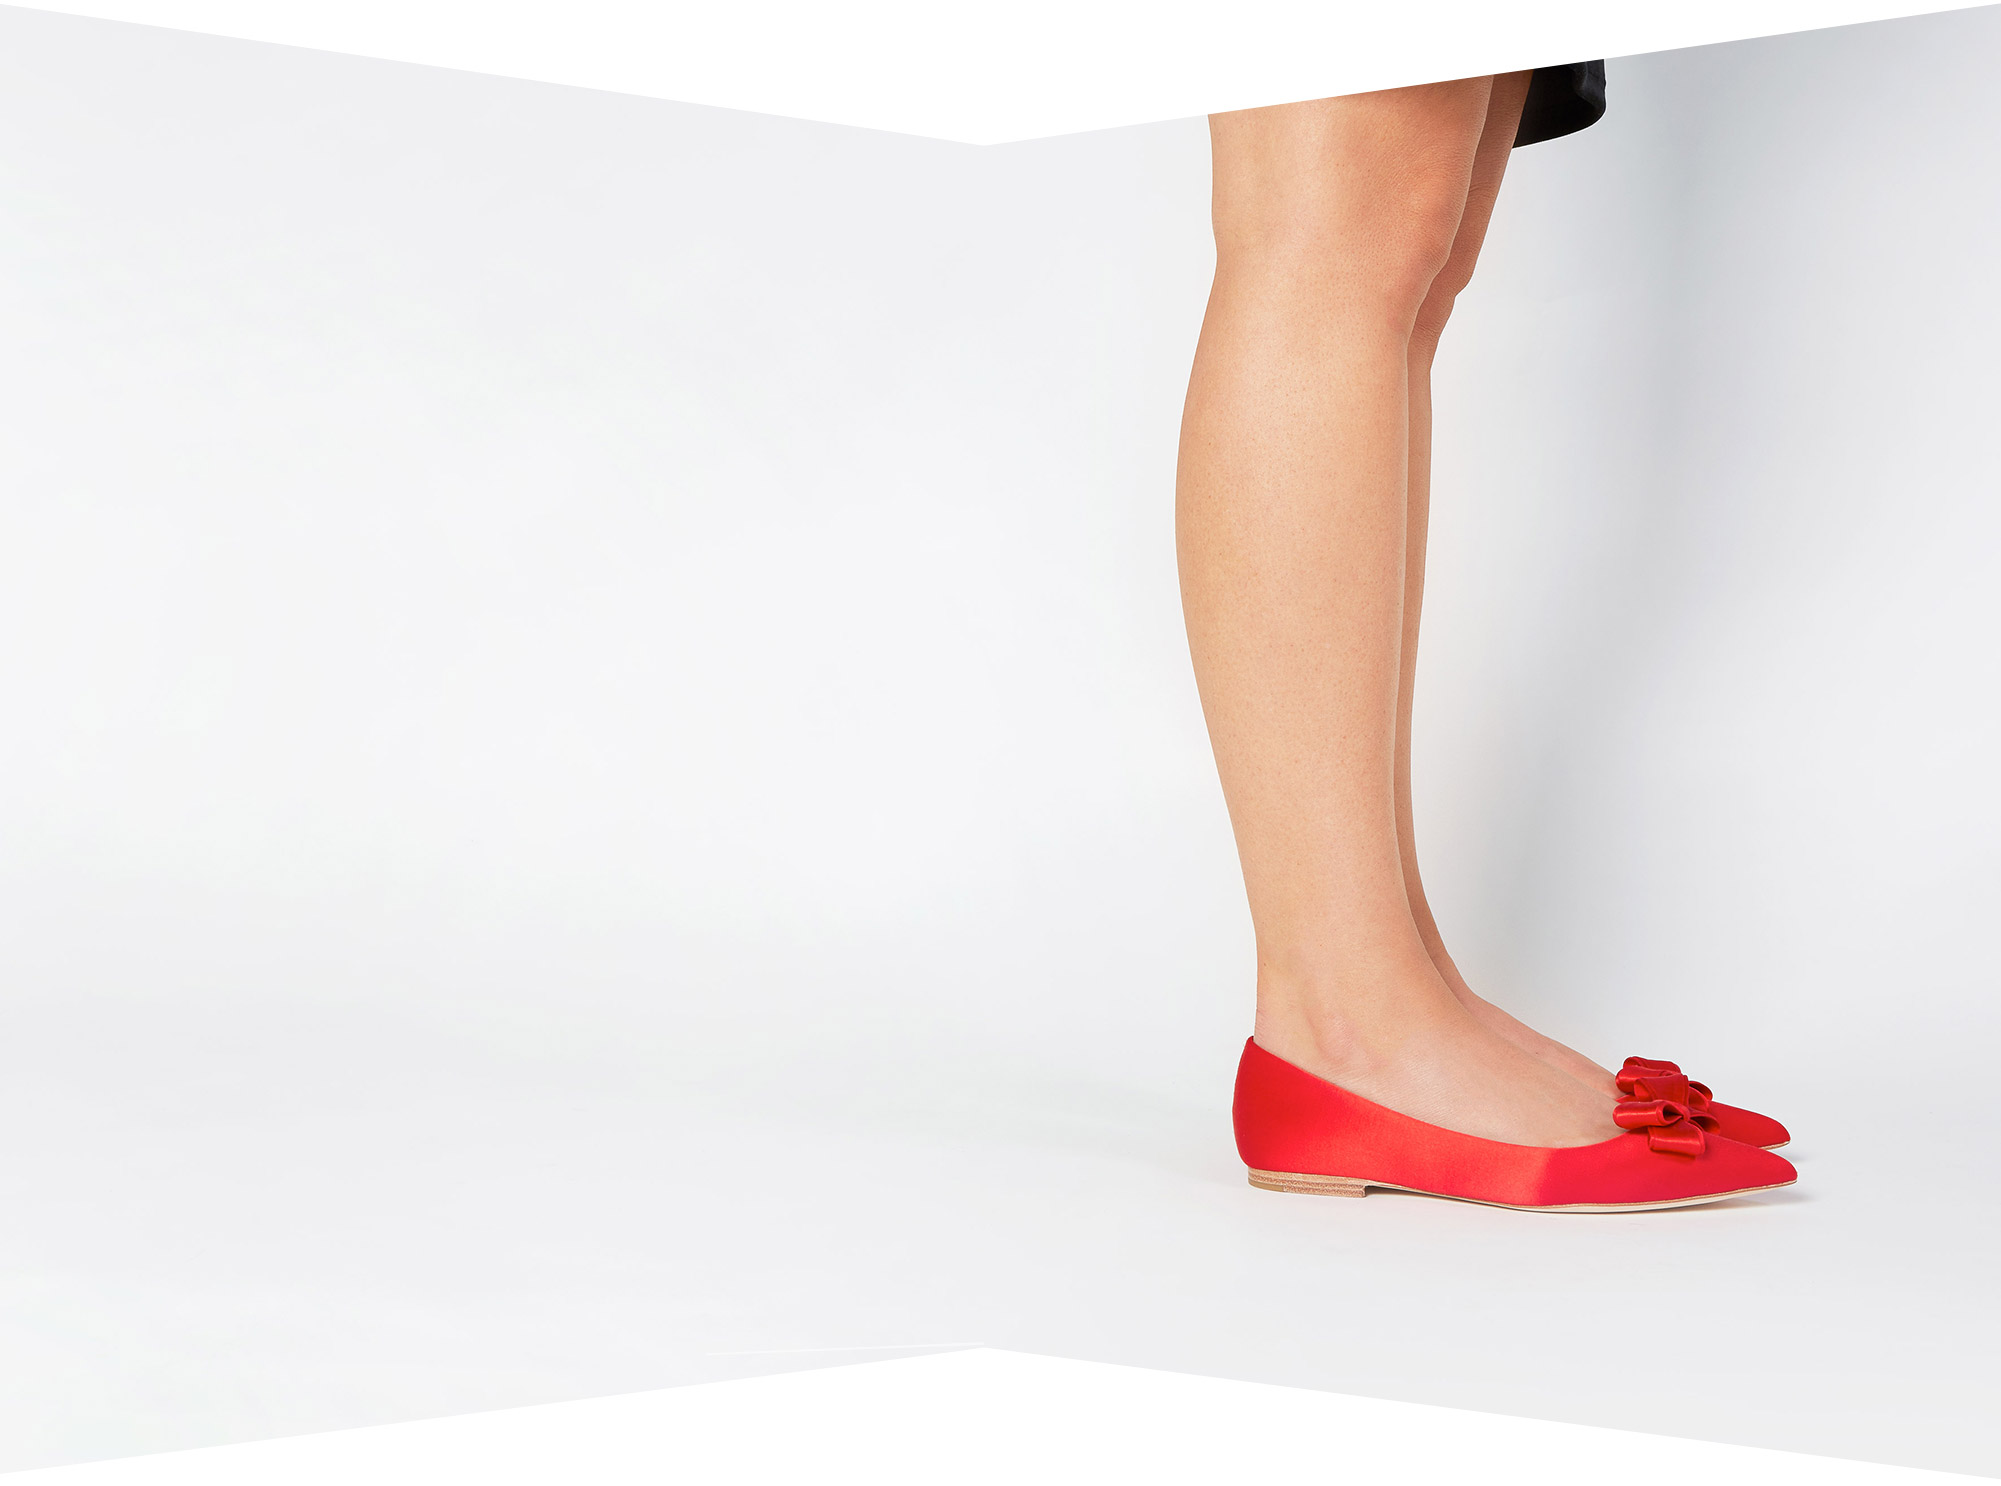 5 tips for choosing flat shoes